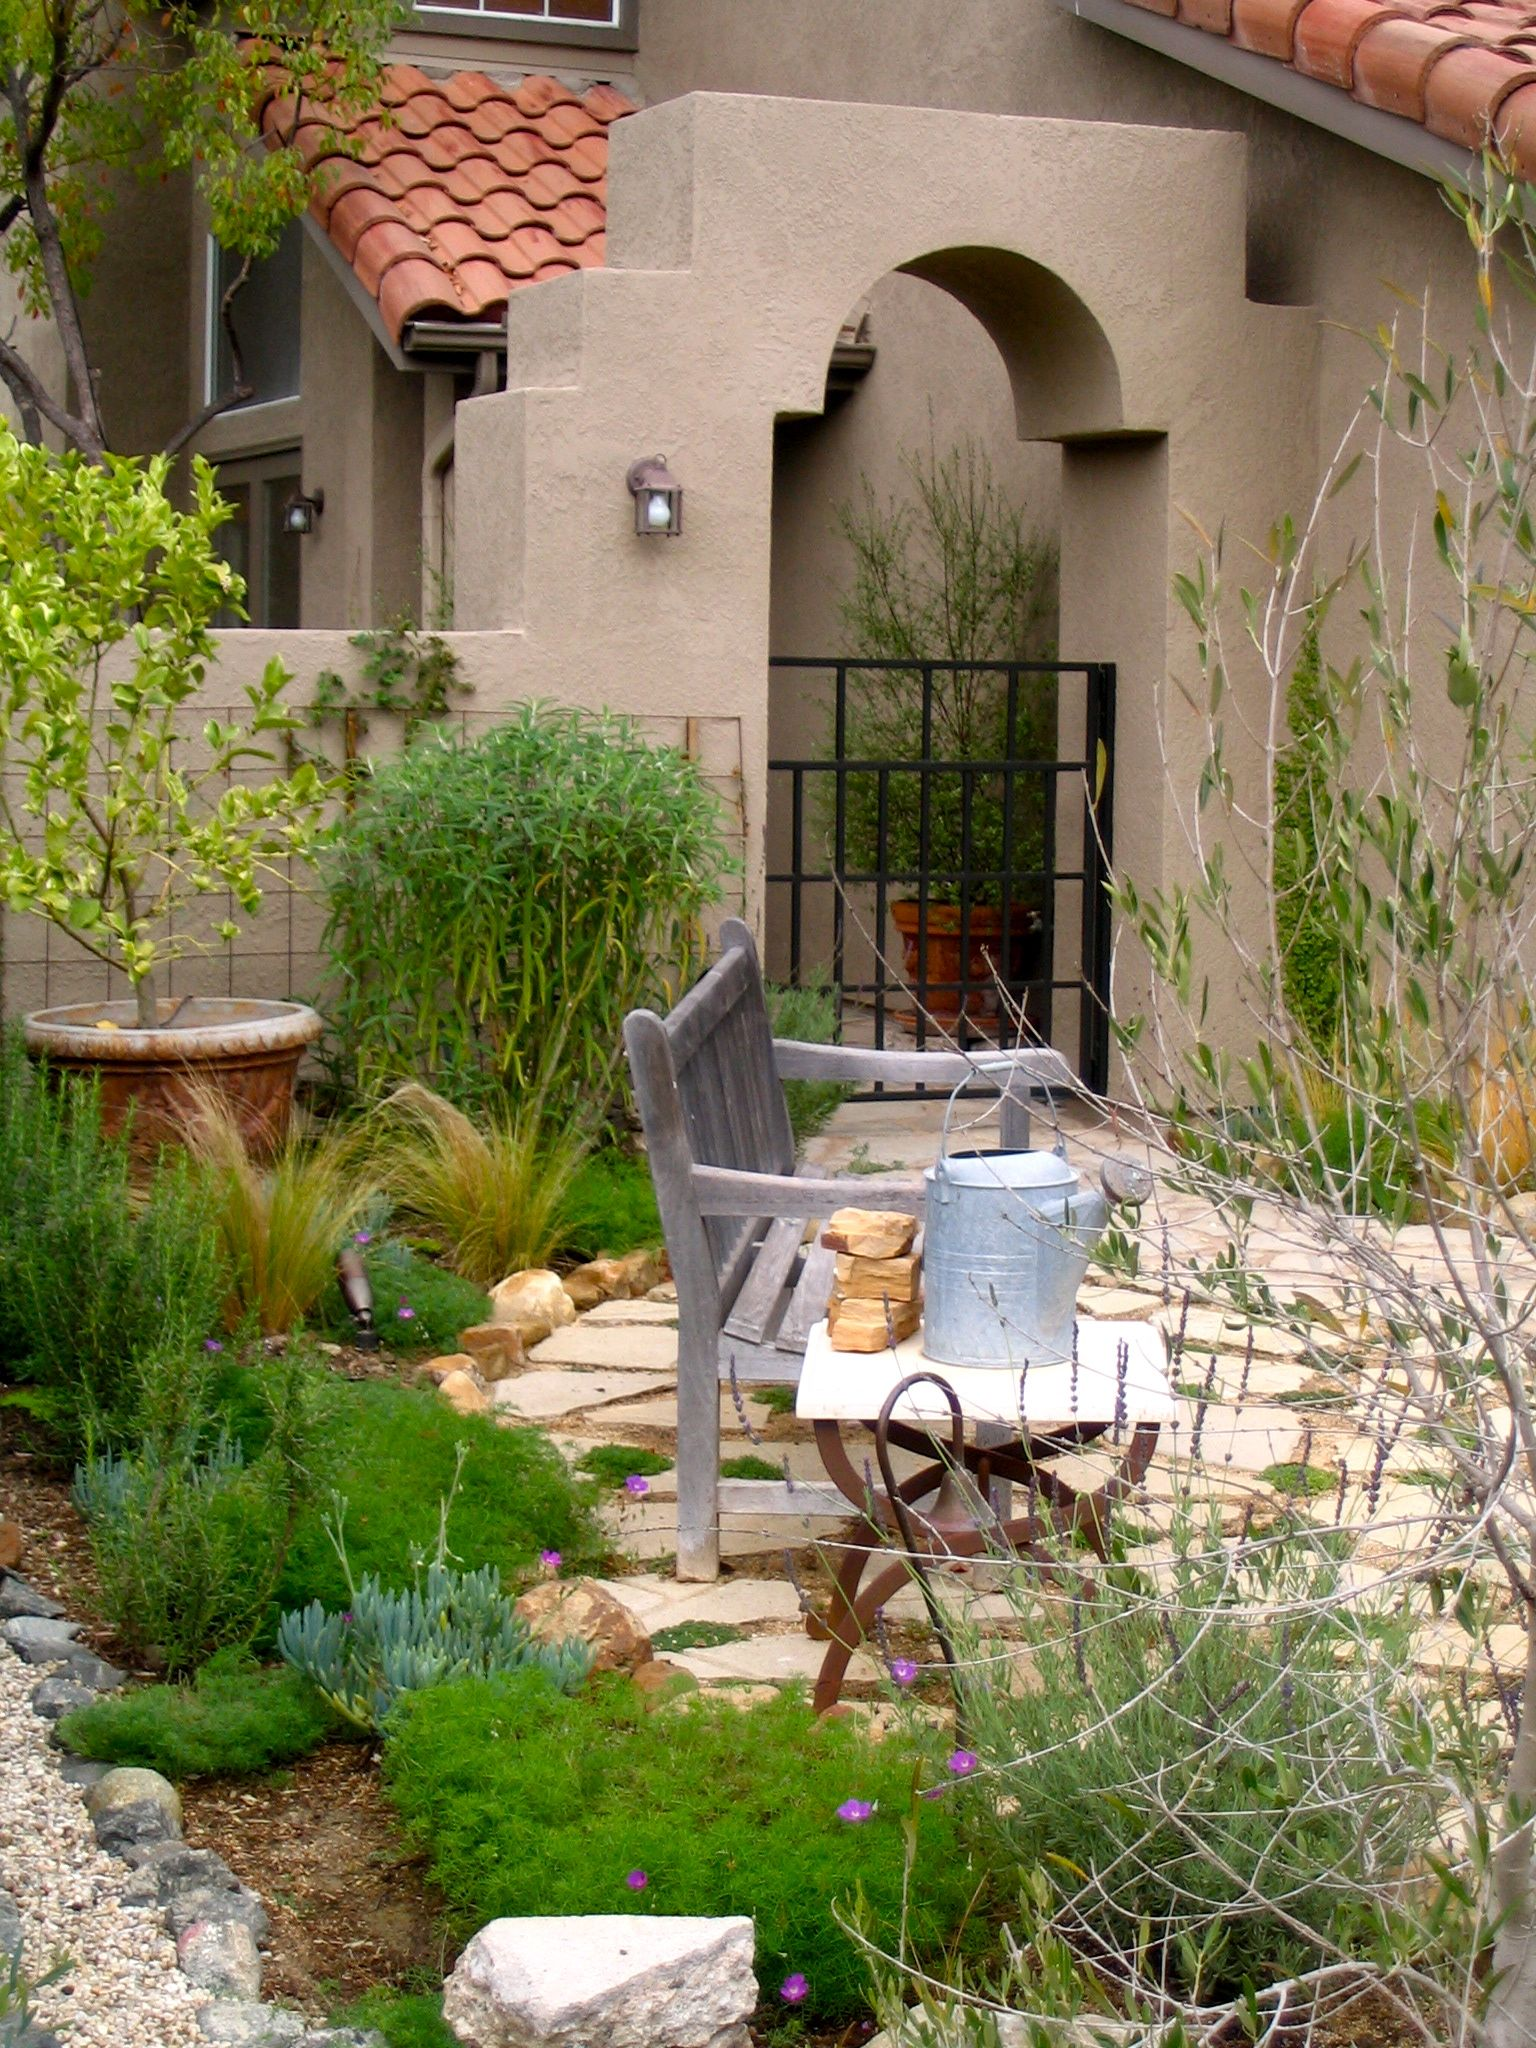 1000 images about curb appeal on pinterest front yards landscaping and drought tolerant - Landscape idea ...